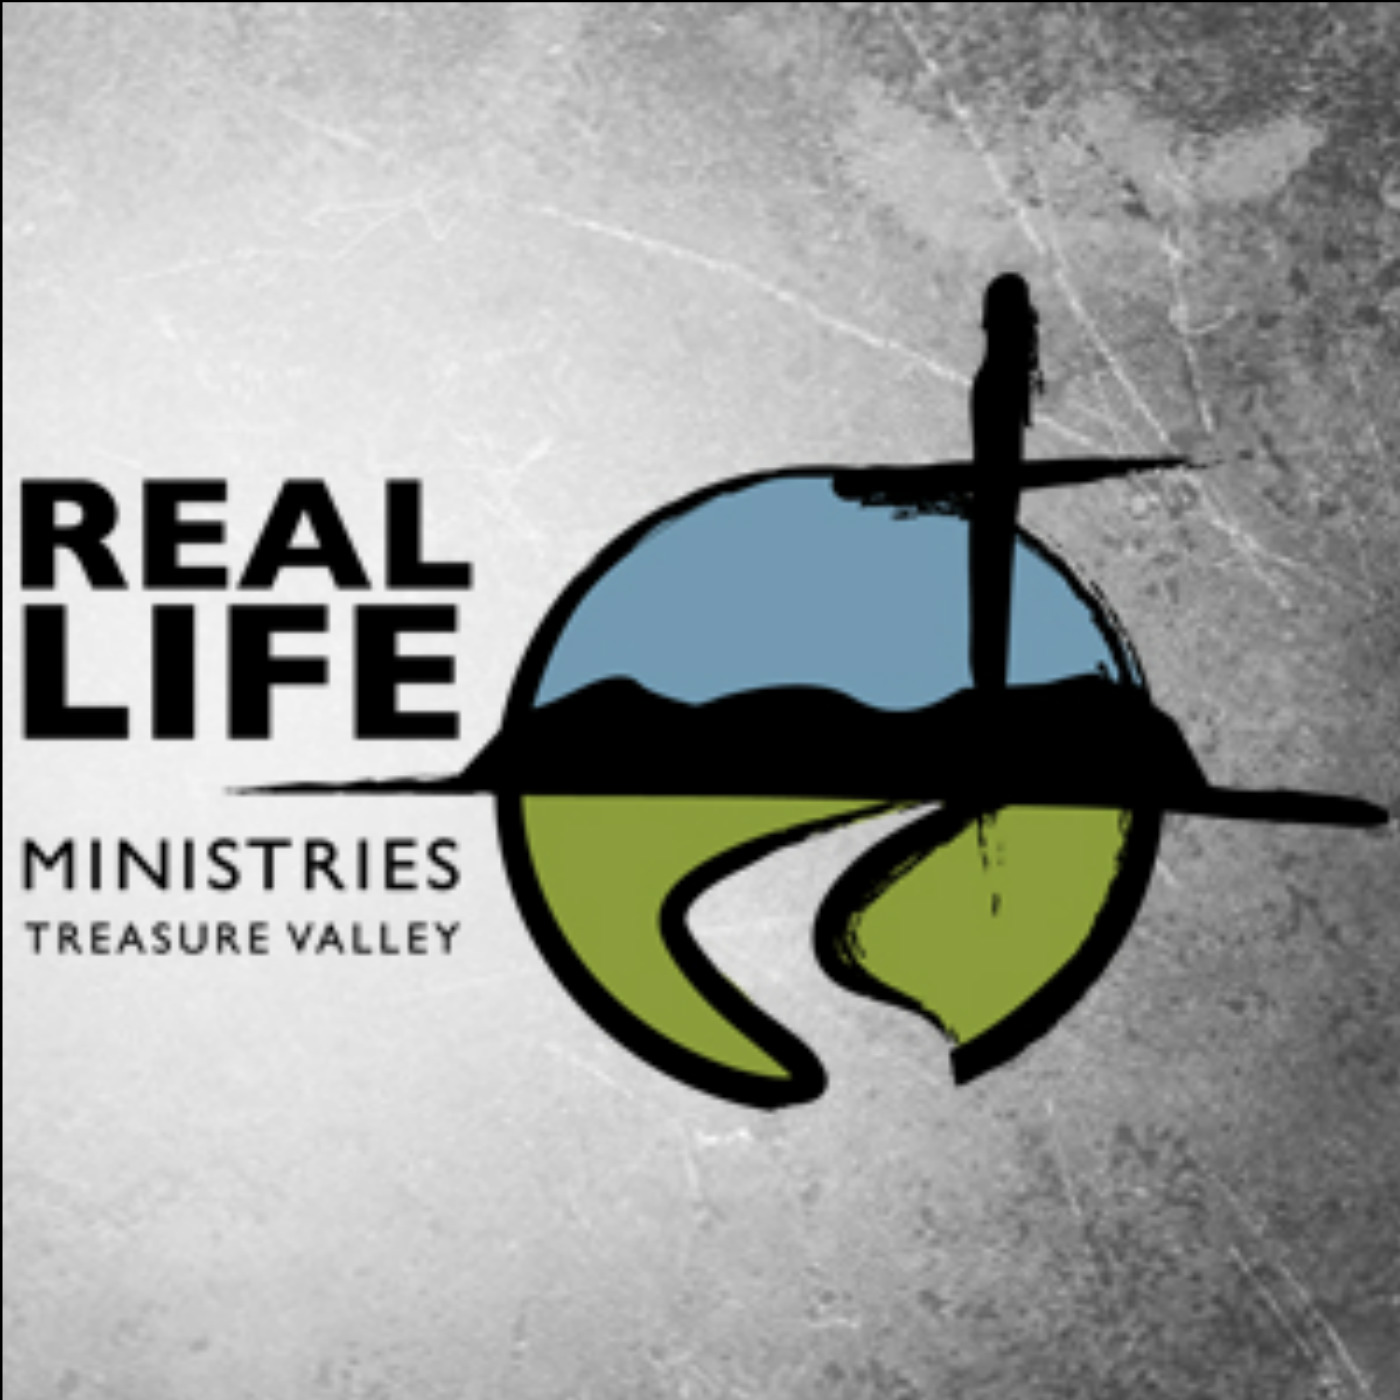 Real Life Ministries Treasure Valley